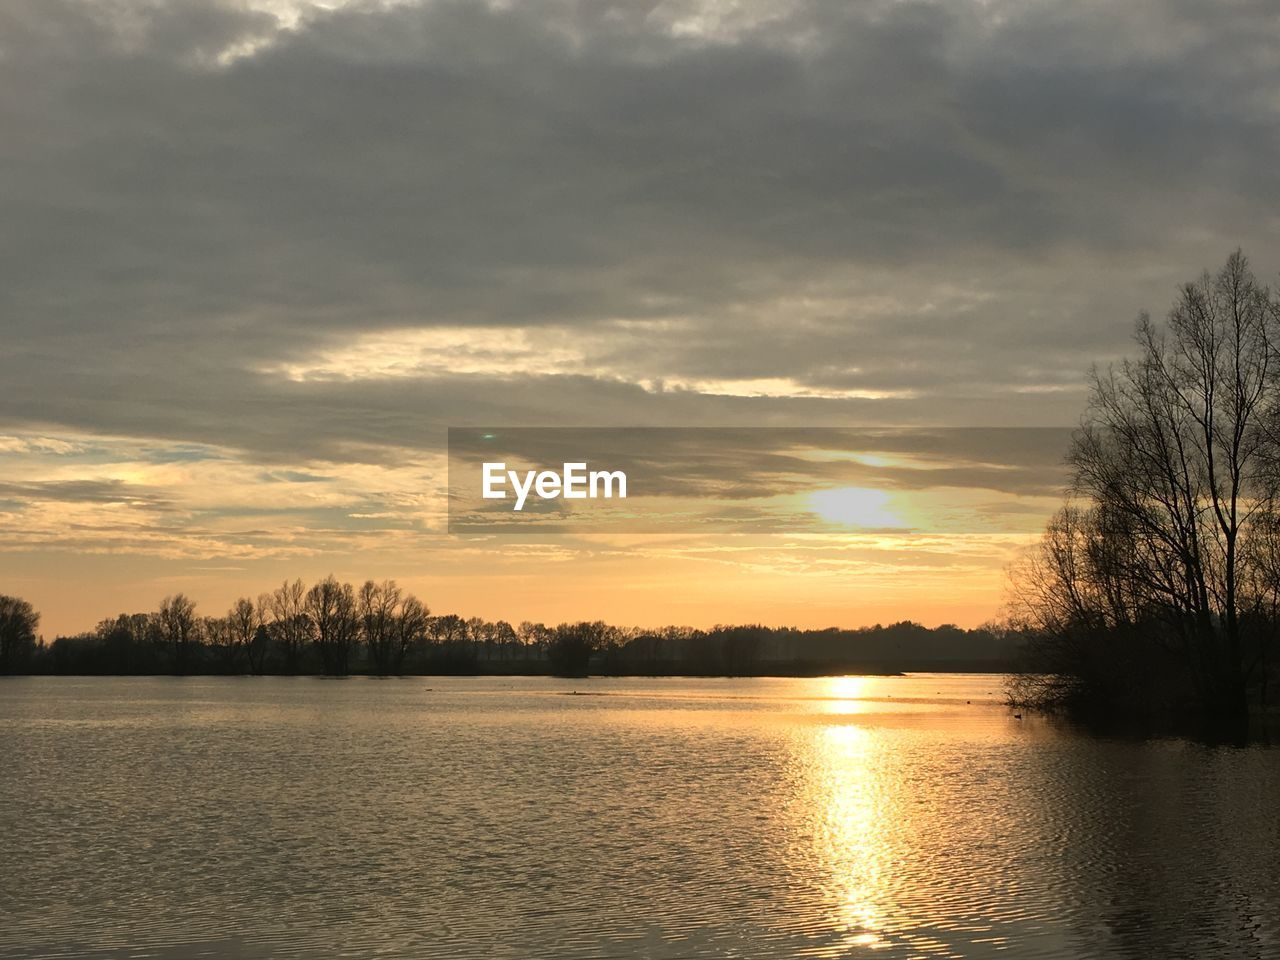 sunset, tranquility, tranquil scene, scenics, beauty in nature, nature, tree, sky, cloud - sky, silhouette, no people, water, lake, reflection, idyllic, outdoors, waterfront, bare tree, day